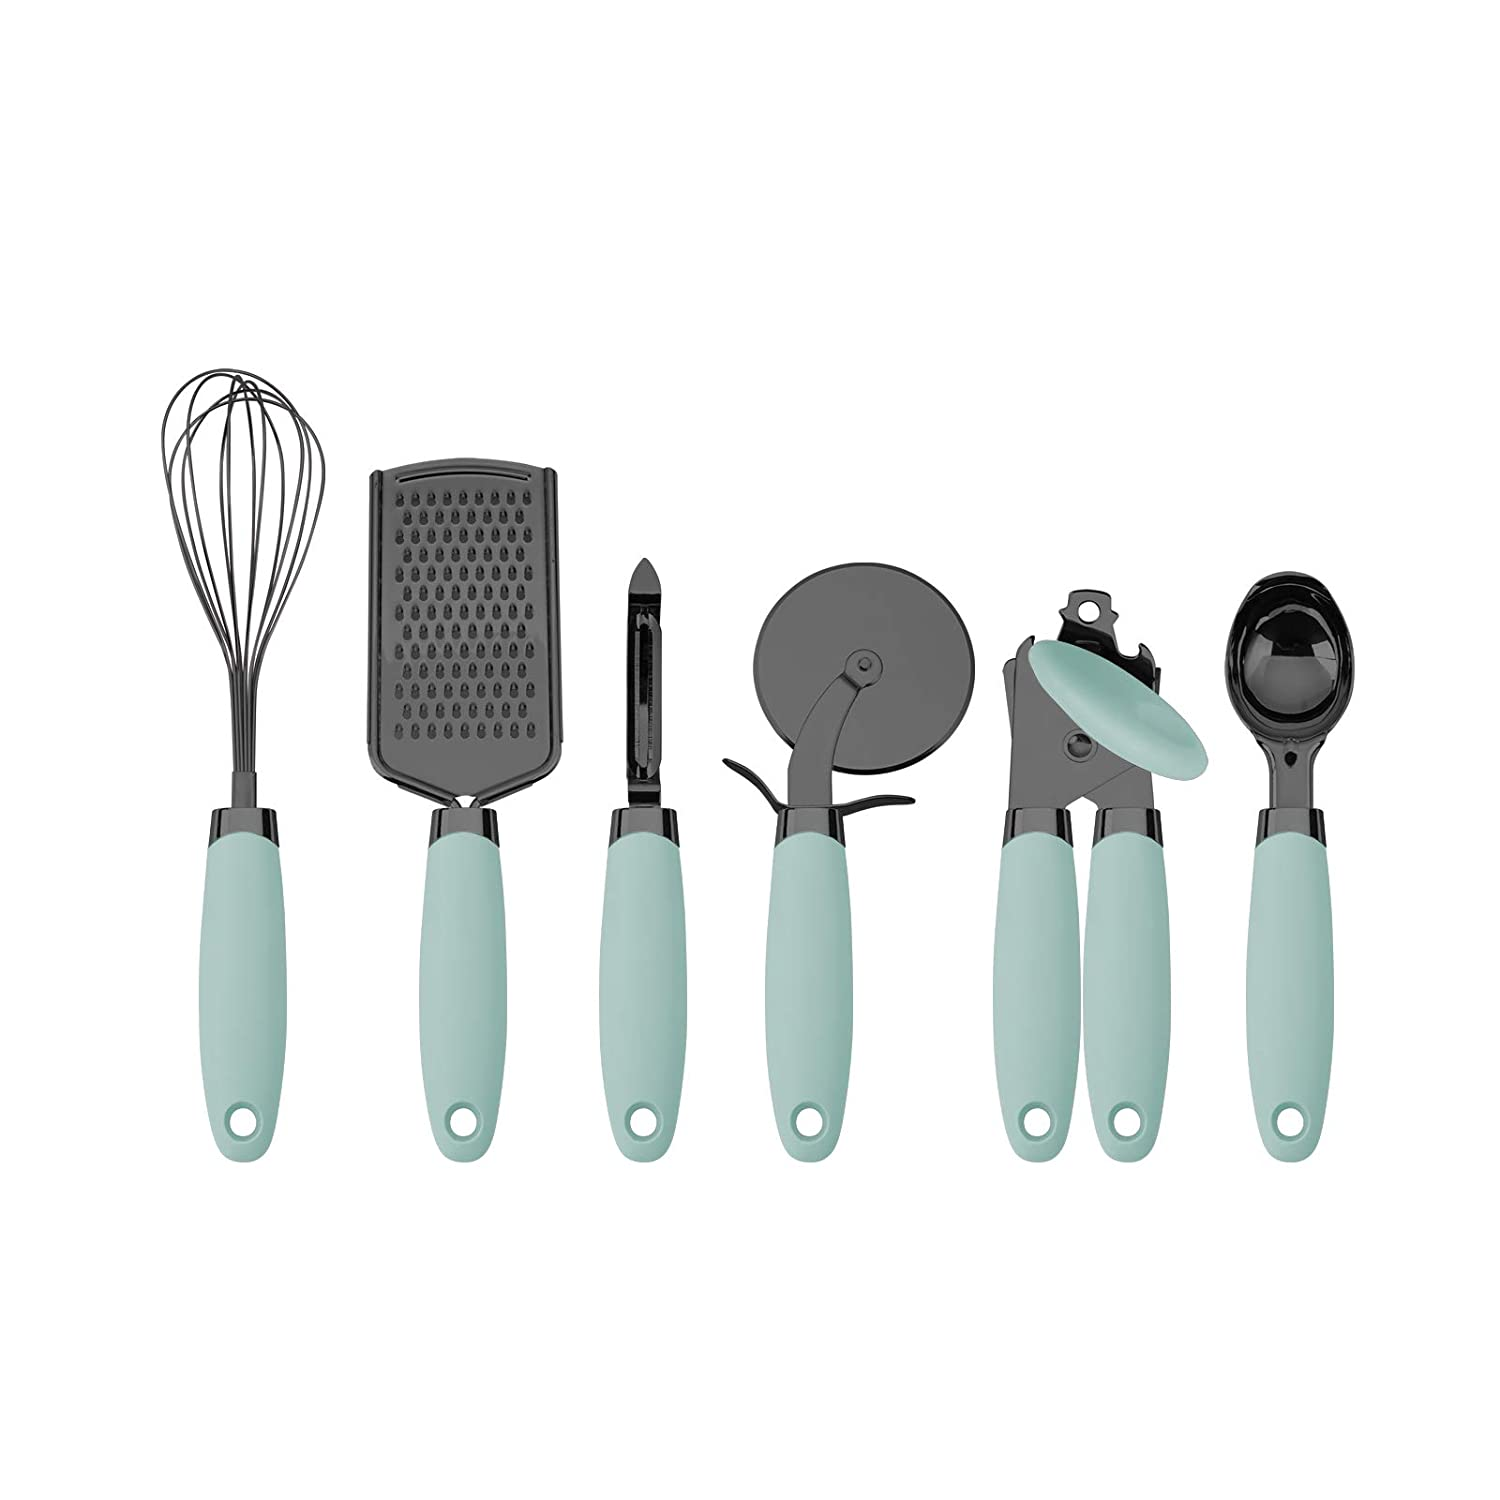 Country Kitchen 6 Pc Essentials Kitchen Stainless Steel Gadget Set Black Gun Metal with Soft Touch Mint Green Handles for Cooking